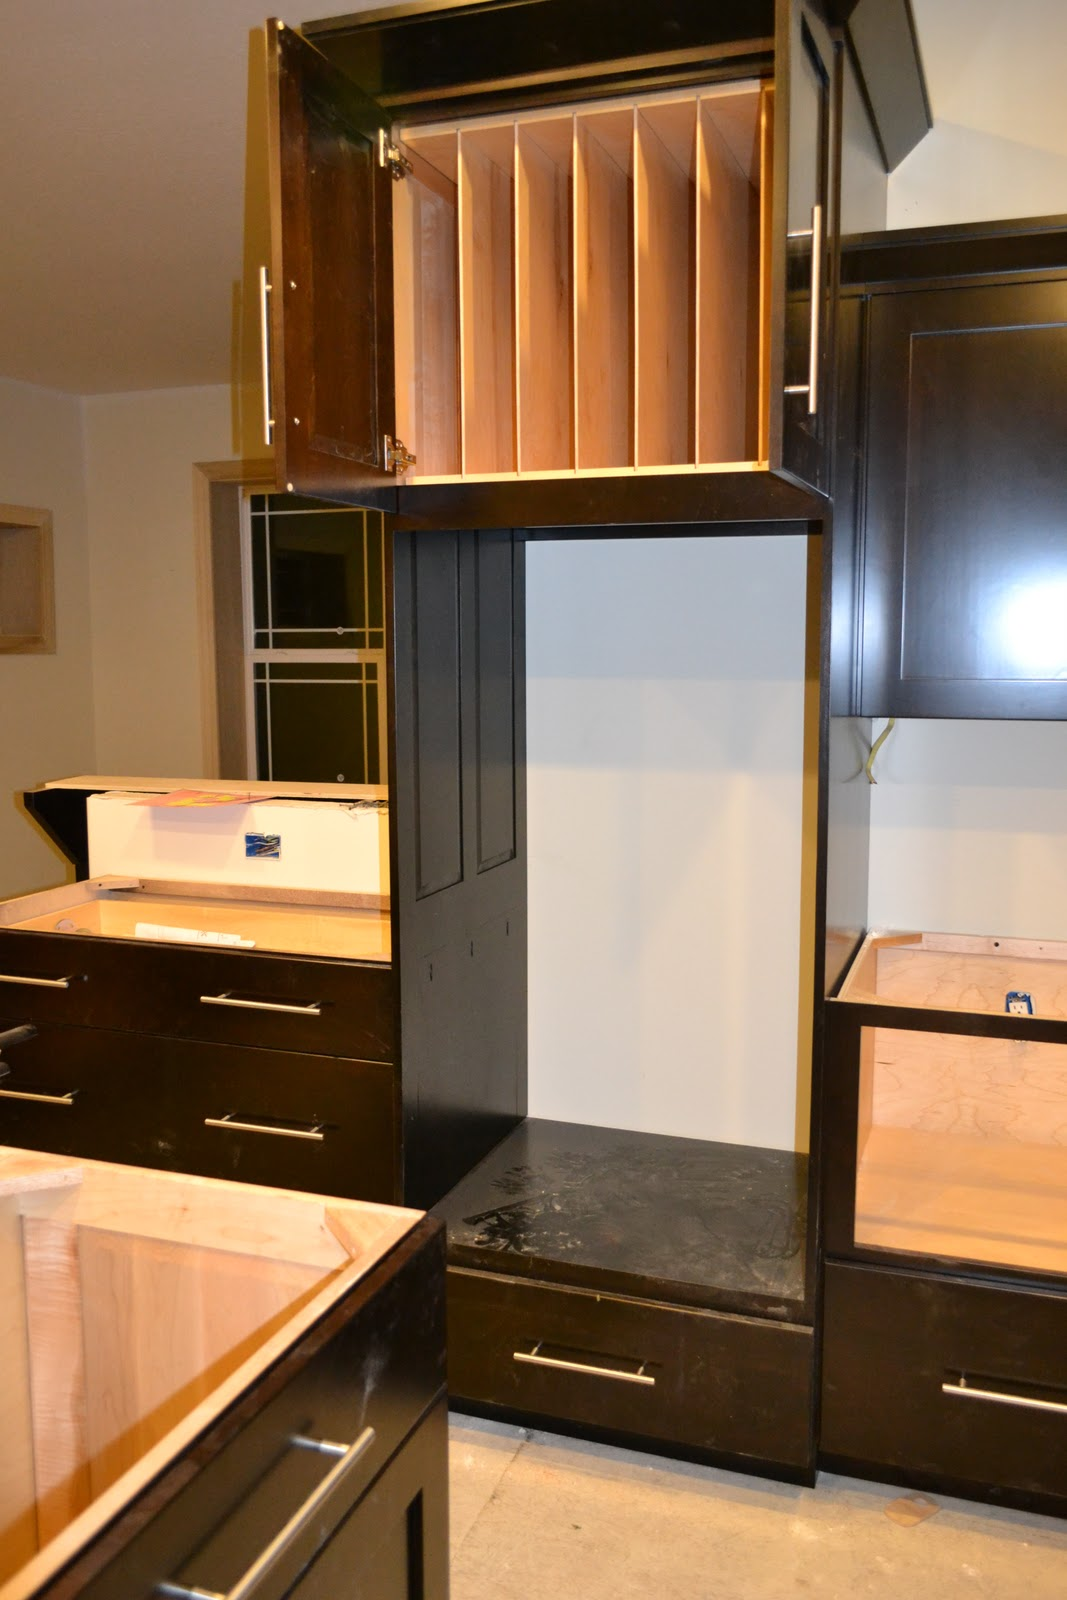 Schrank Einbauherd De Jong Dream House Kitchen Cabinets Installed